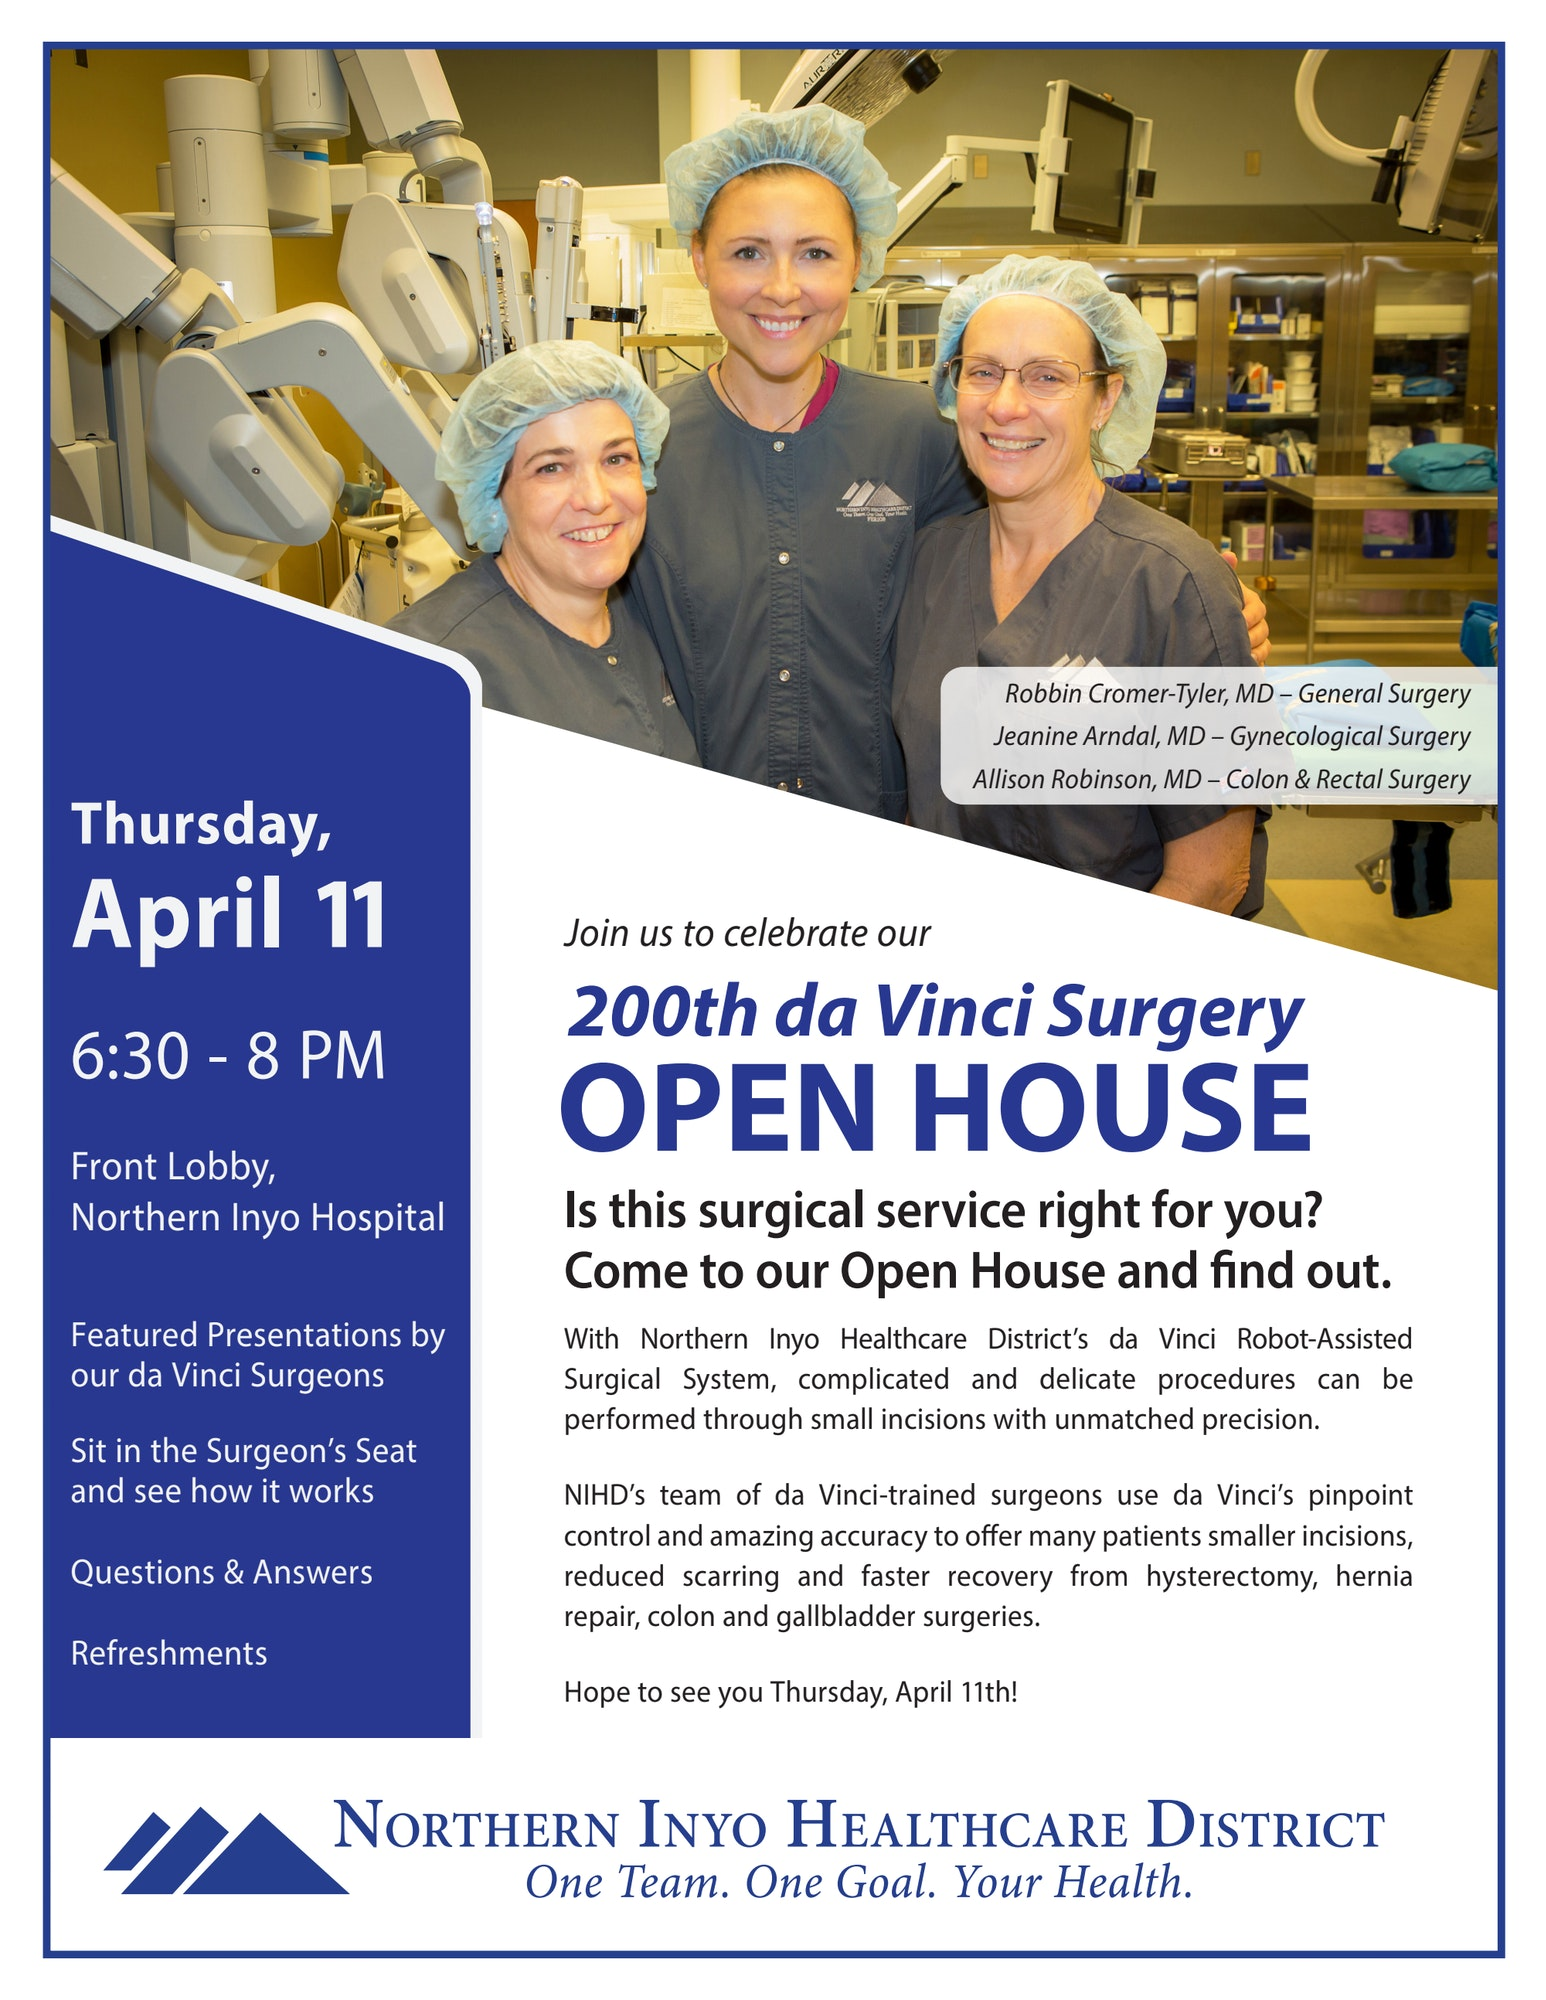 Poster for 200th da Vinci Surgery Open House on April 11